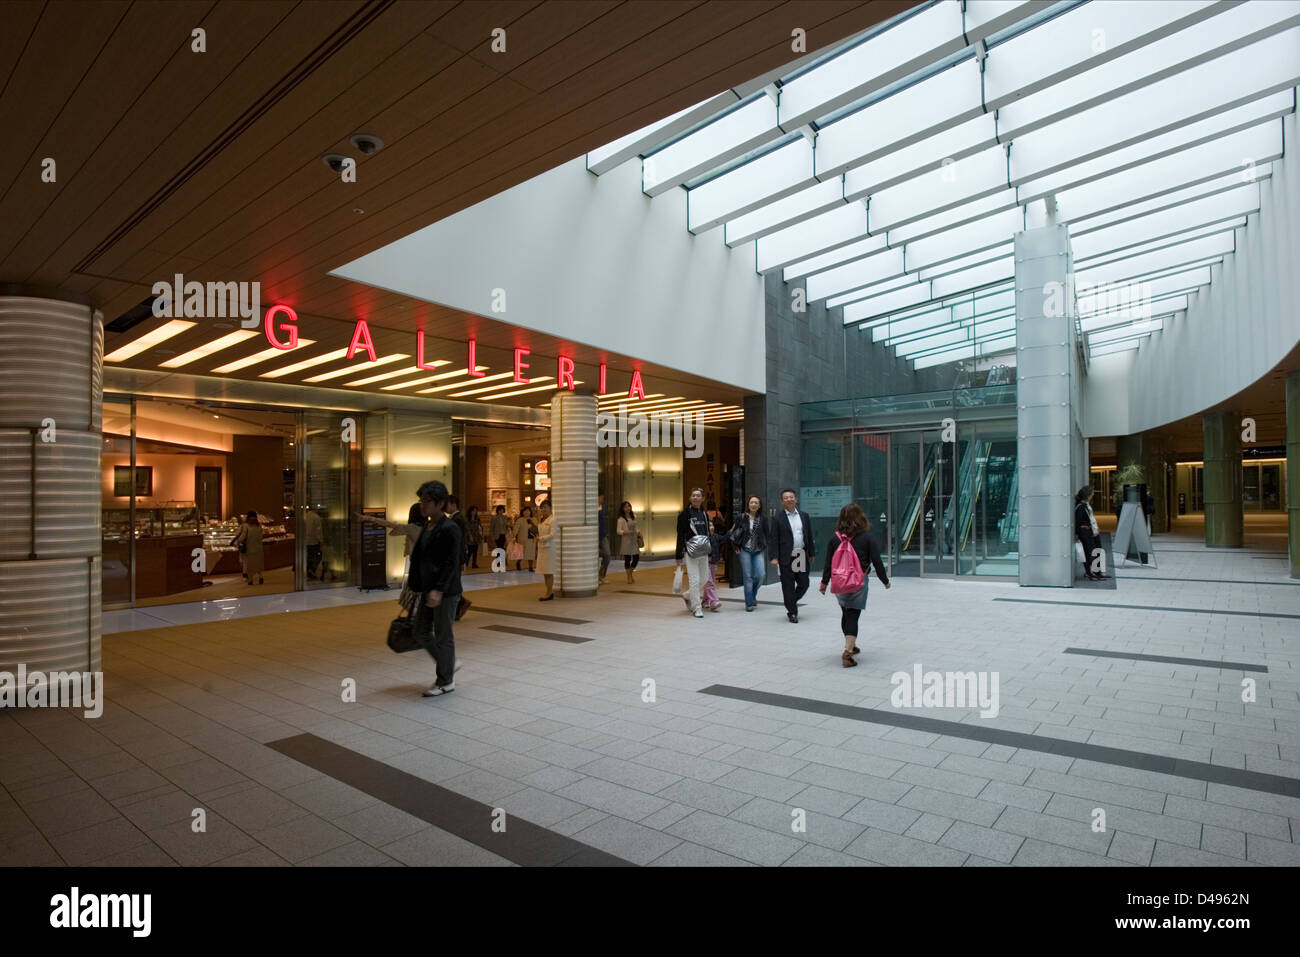 Galleria shopping mall entrance at new Tokyo Midtown, a mixed-use shopping, hotel and residential complex in Roppongi, - Stock Image